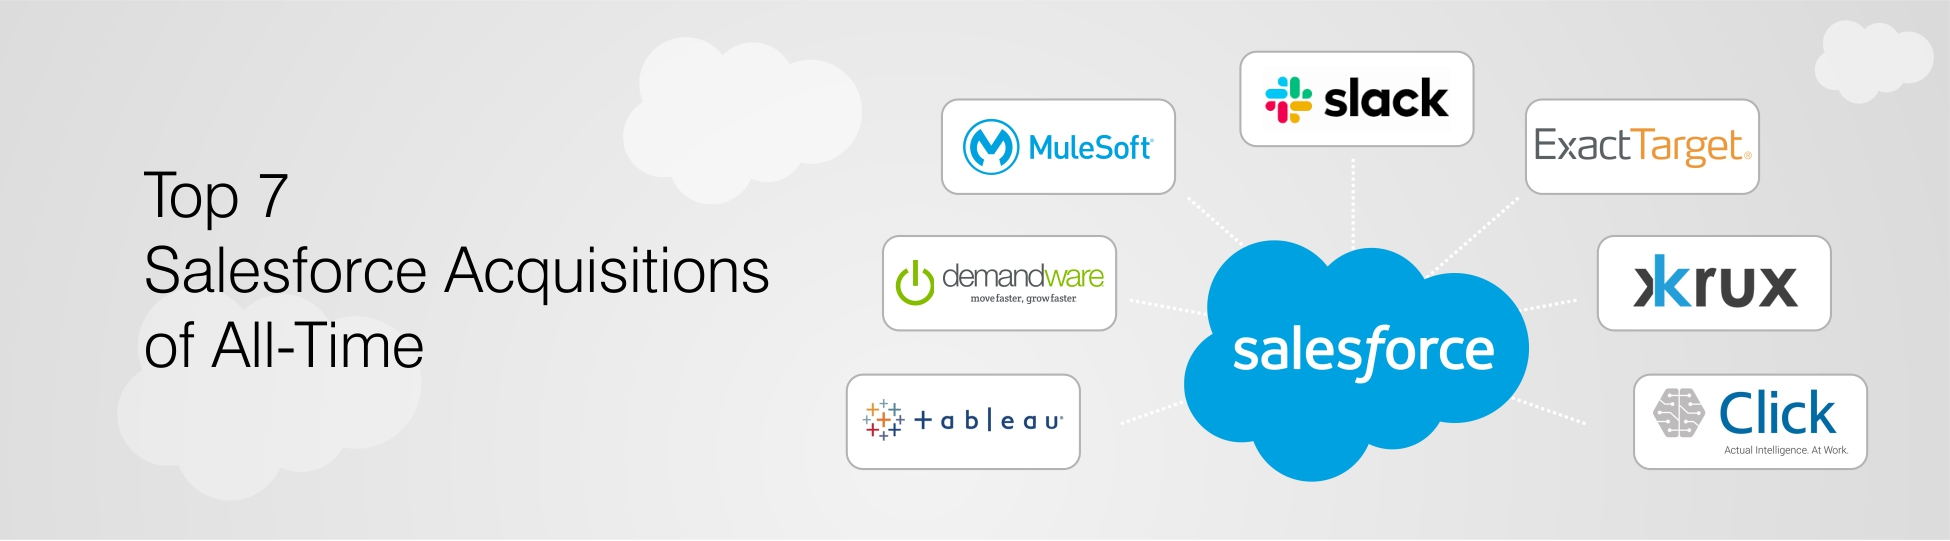 Top 7 Salesforce Acquisitions of All-Time